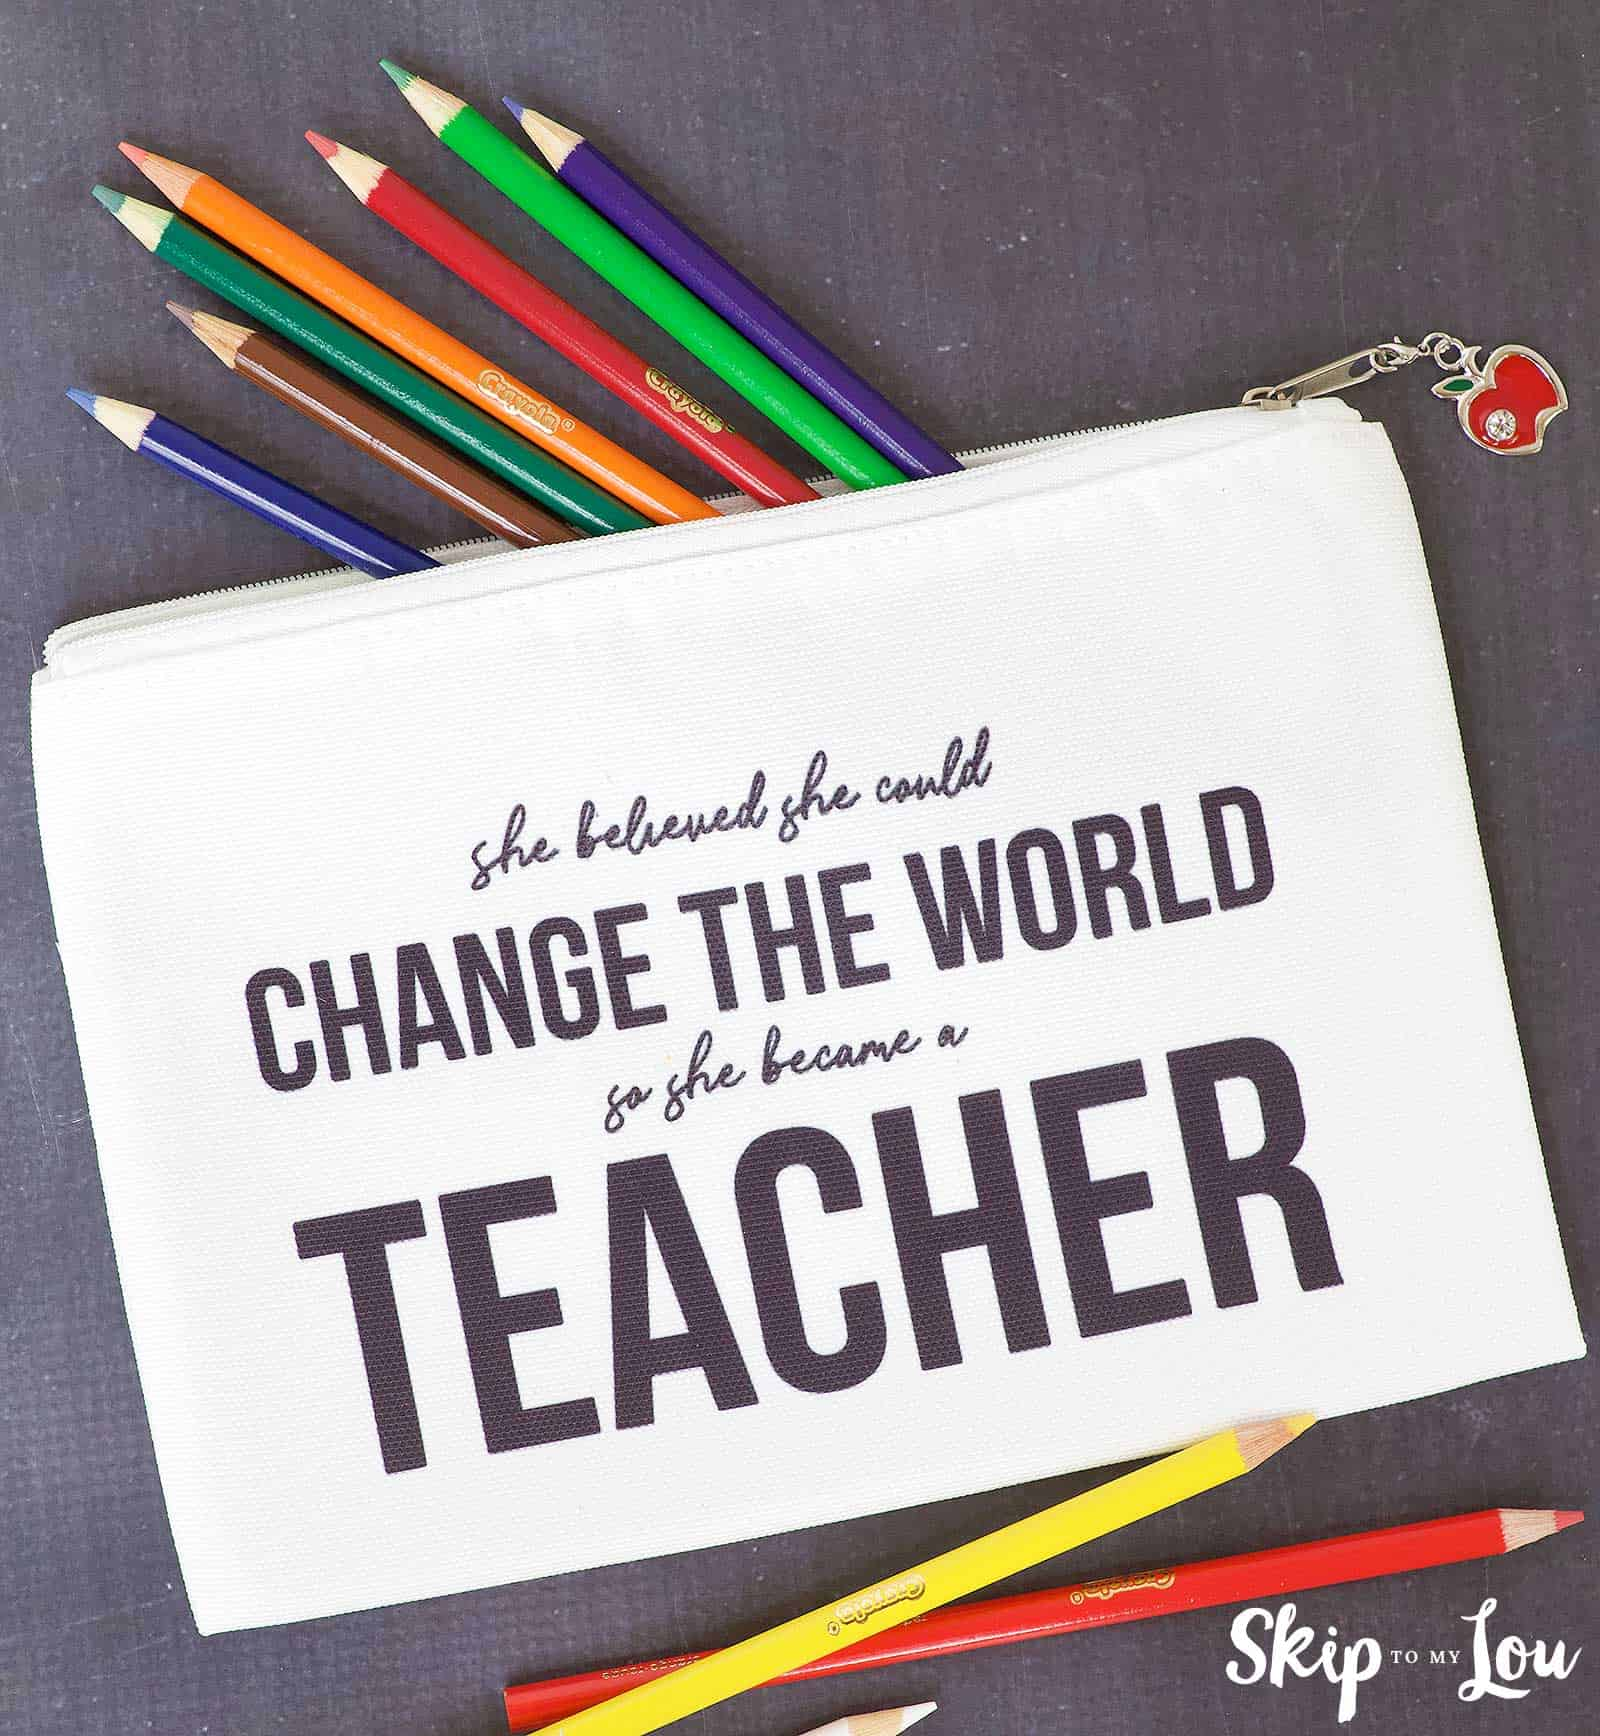 she thought she would change the world so she became a teacher saying on bag